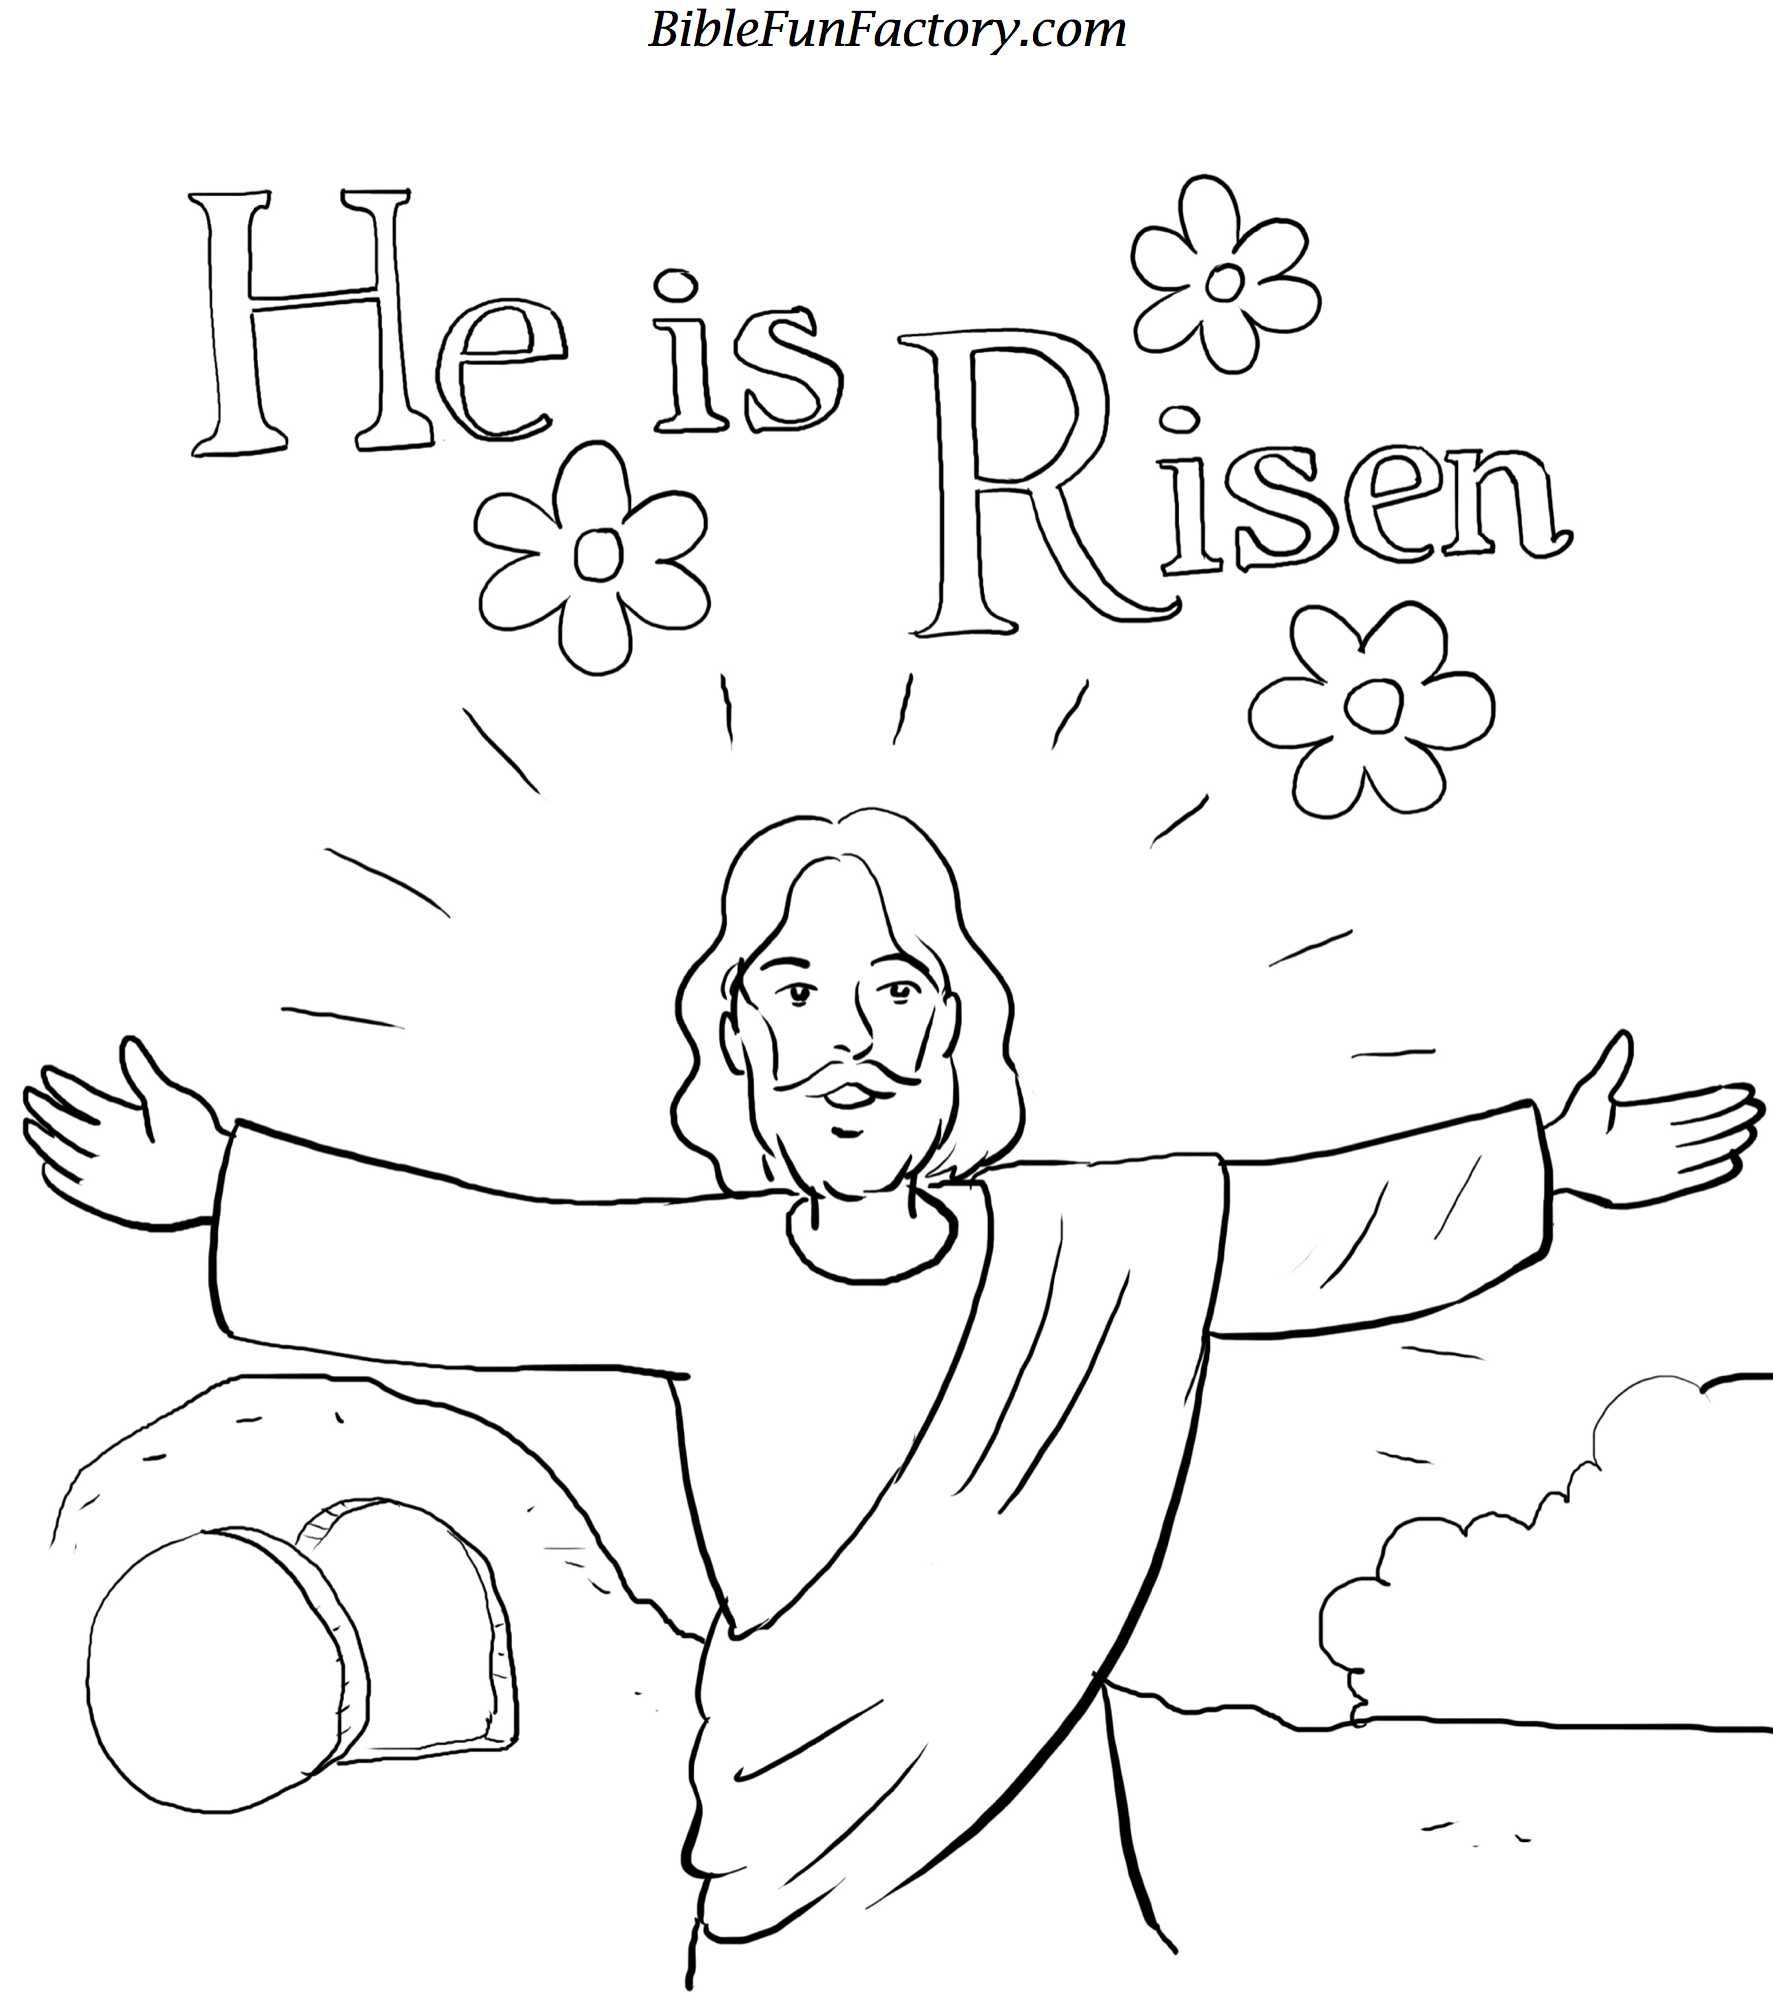 Colouring sheets to colour - Resurrection Coloring Pages Free Easter Coloring Sheet